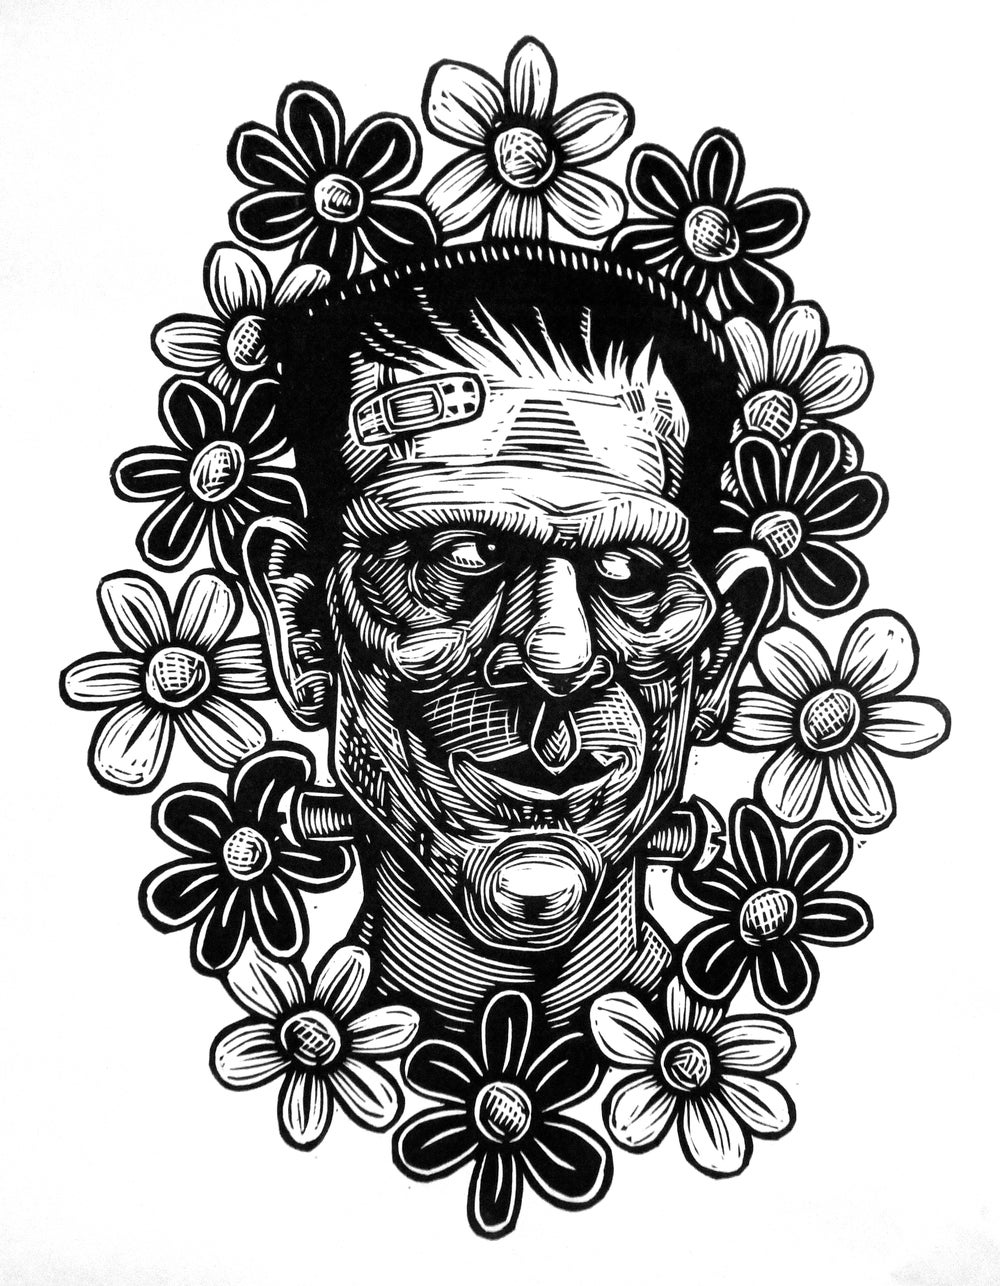 FrankenFlowers T-shirt (A2)**FREE SHIPPING**